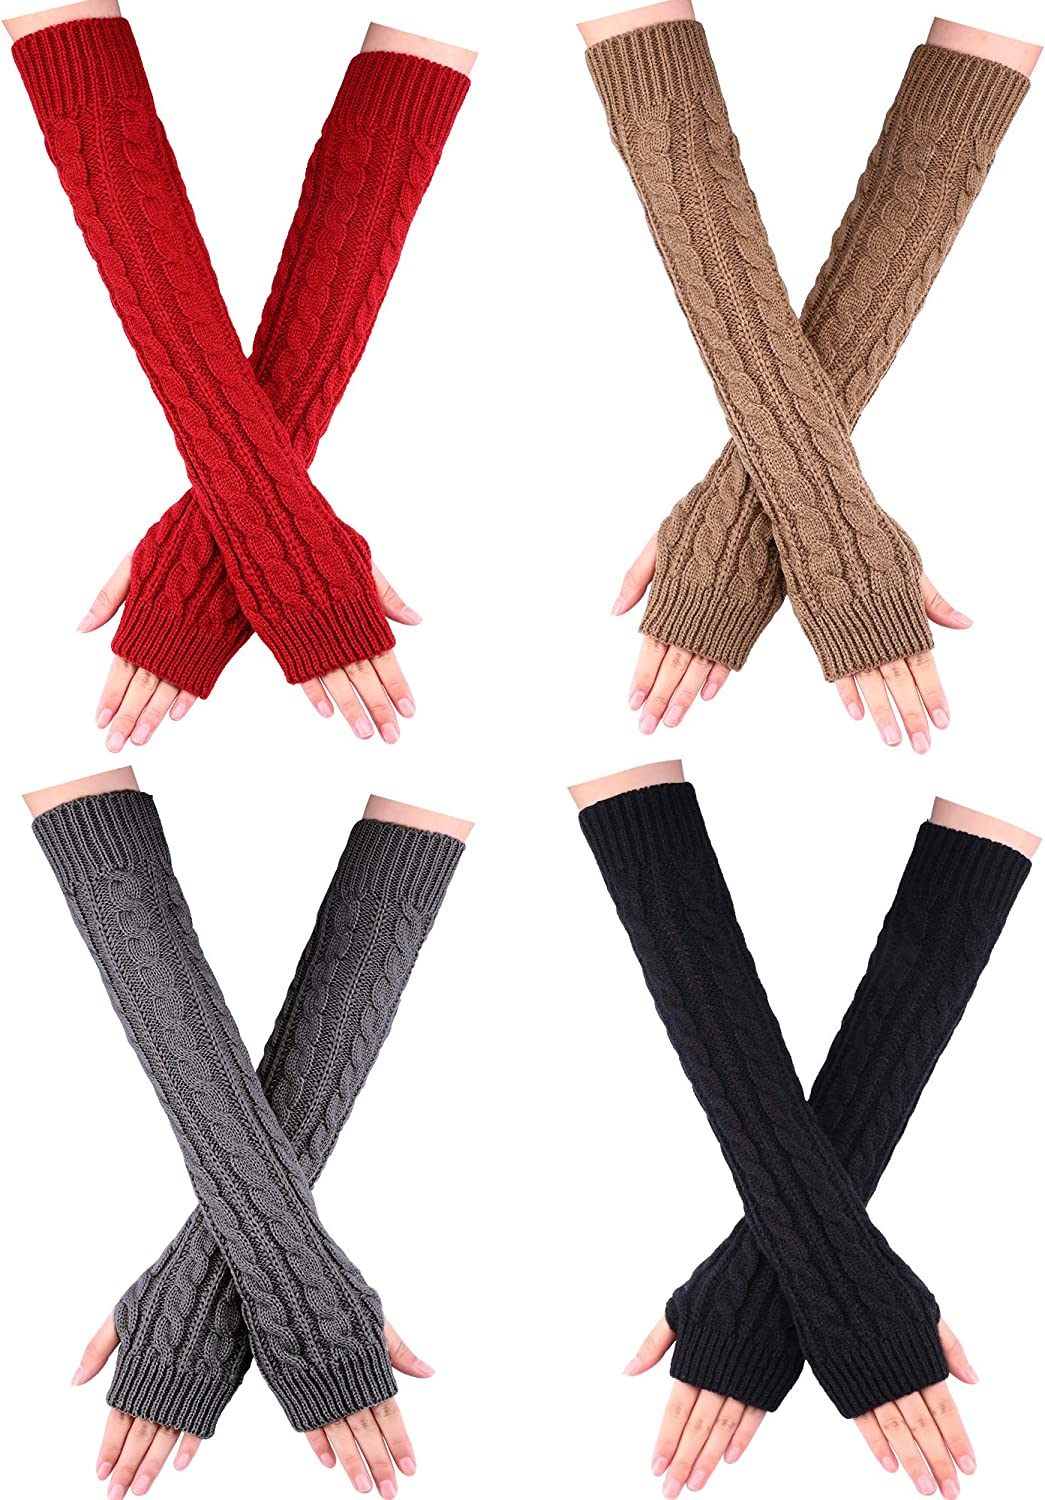 4 Pairs Women Long Fingerless Gloves Winter Mitten Arm Gloves with Thumb Hole for Winter (Black, Wine Red, Khaki, Dark Grey, Polyester)